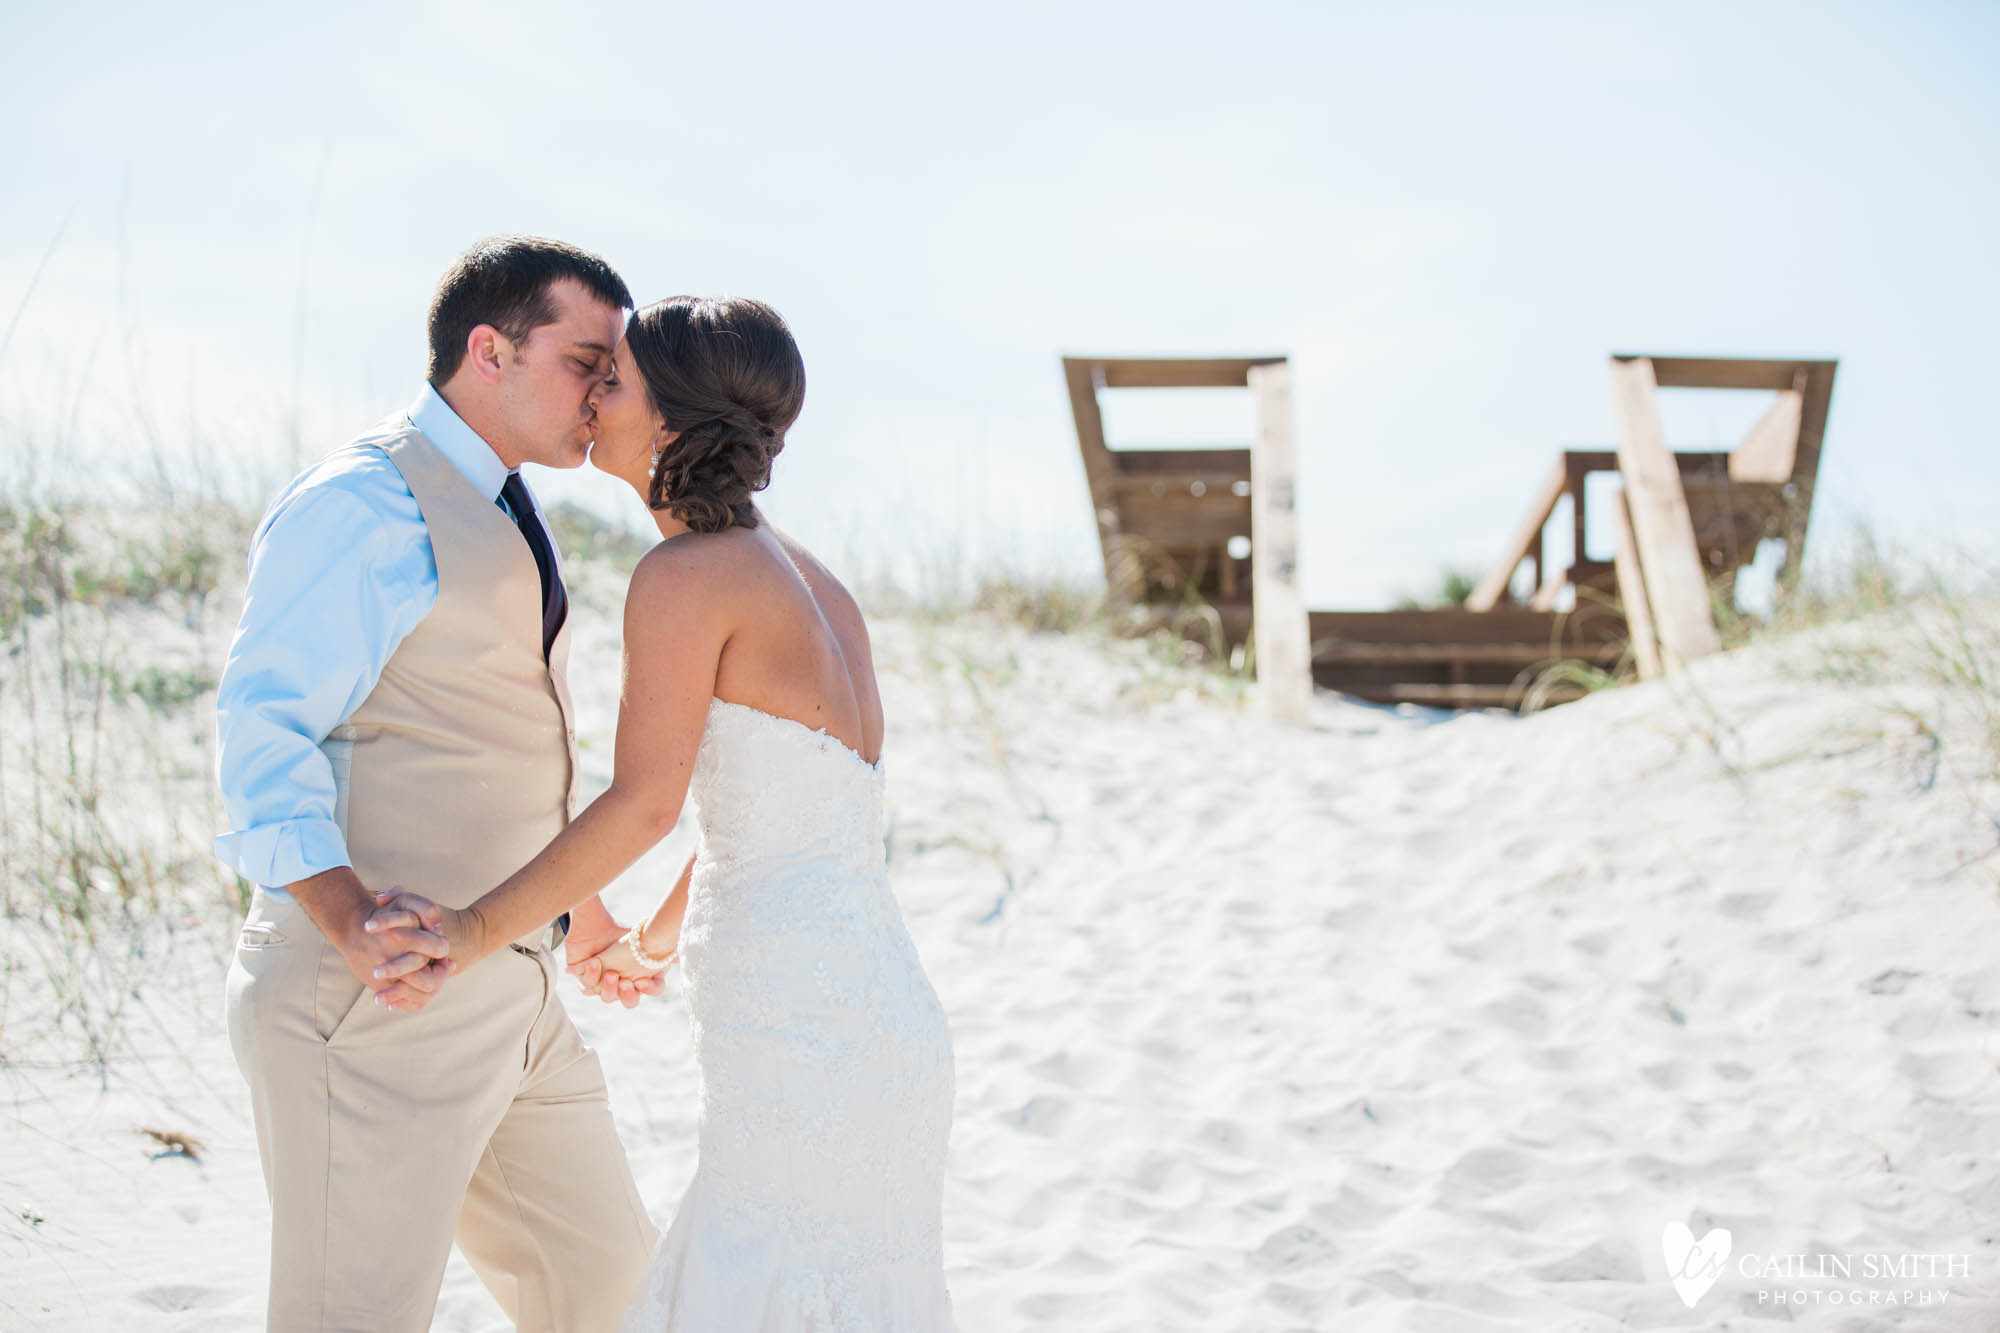 Kimberly_Ross_Amelia_Island_Wedding_Photography_021.jpg